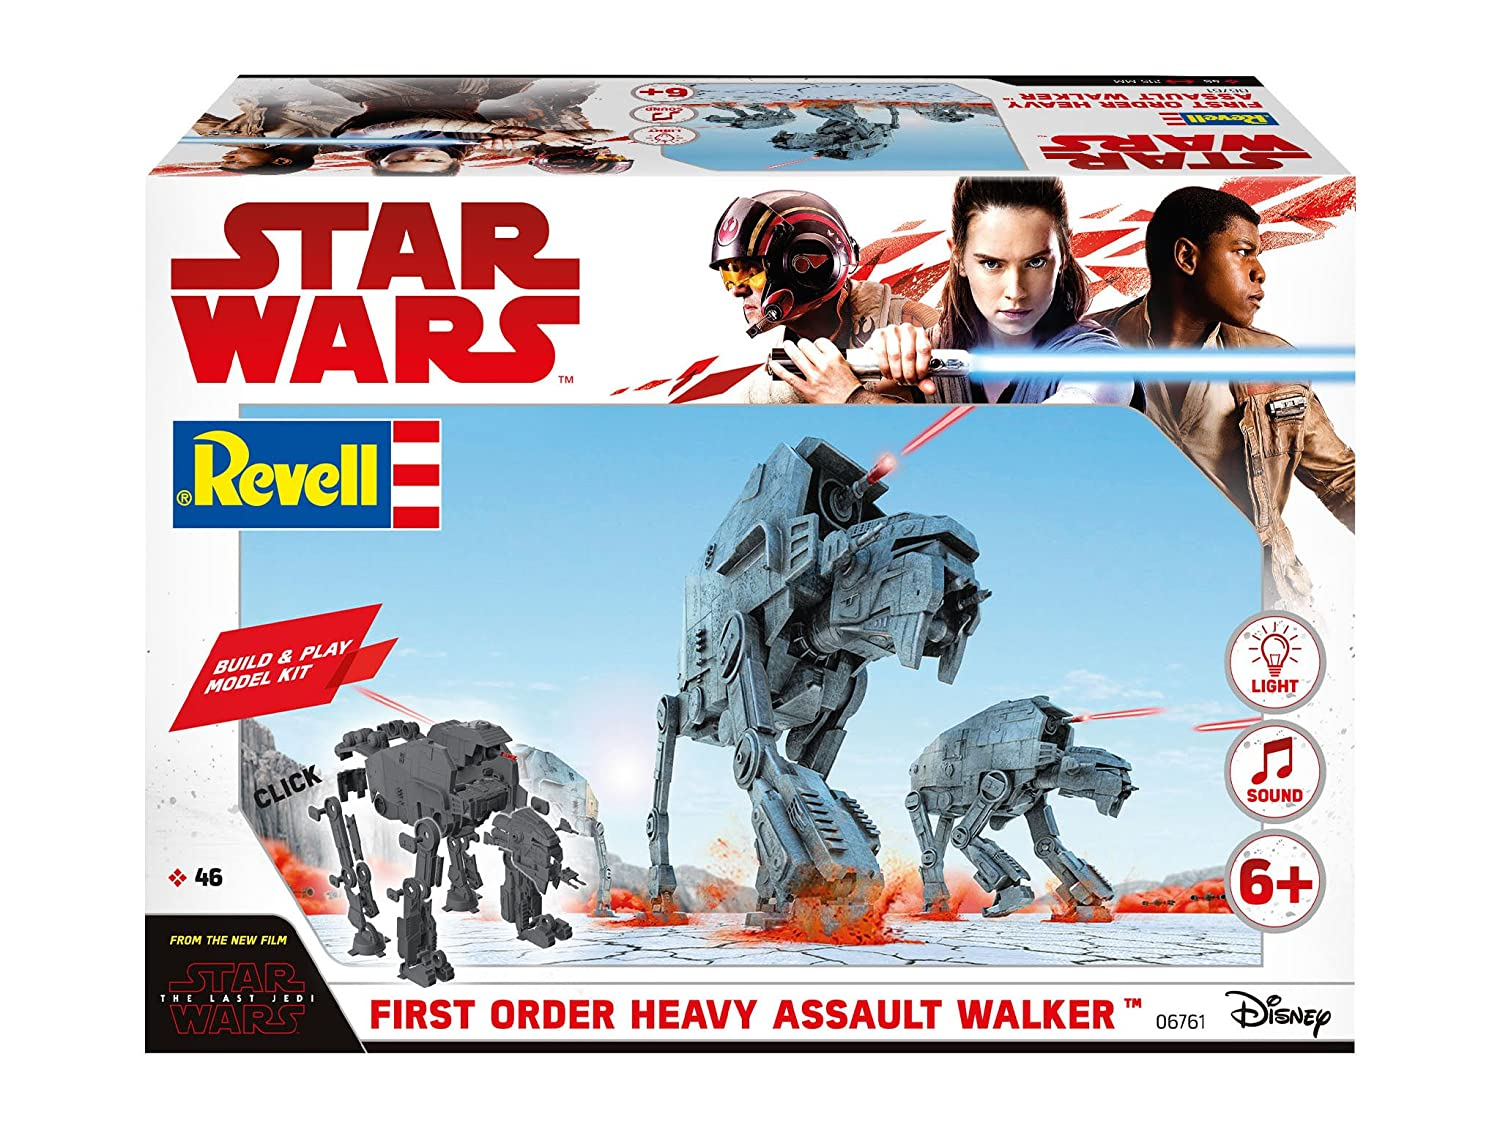 Revell- Star Wars Episodio VIII Build & Play Rojo ala-A Fighter, con Luces y Sonidos (6761) (06761), Color 06761-heavy Assault Walker, with Lights & ...